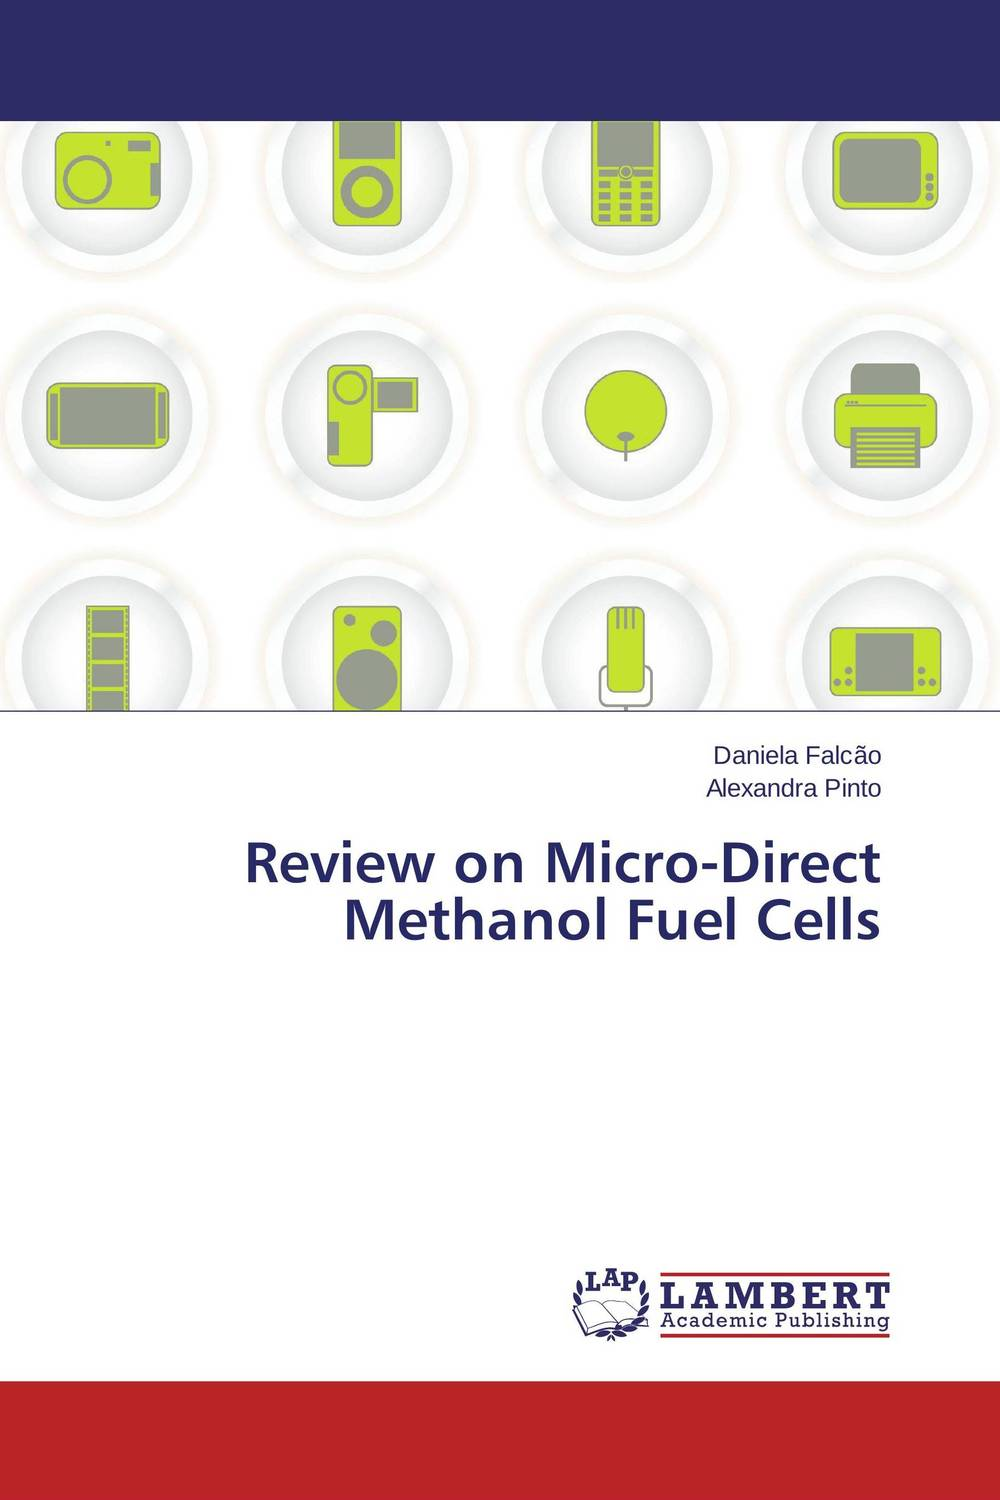 Review on Micro-Direct Methanol Fuel Cells